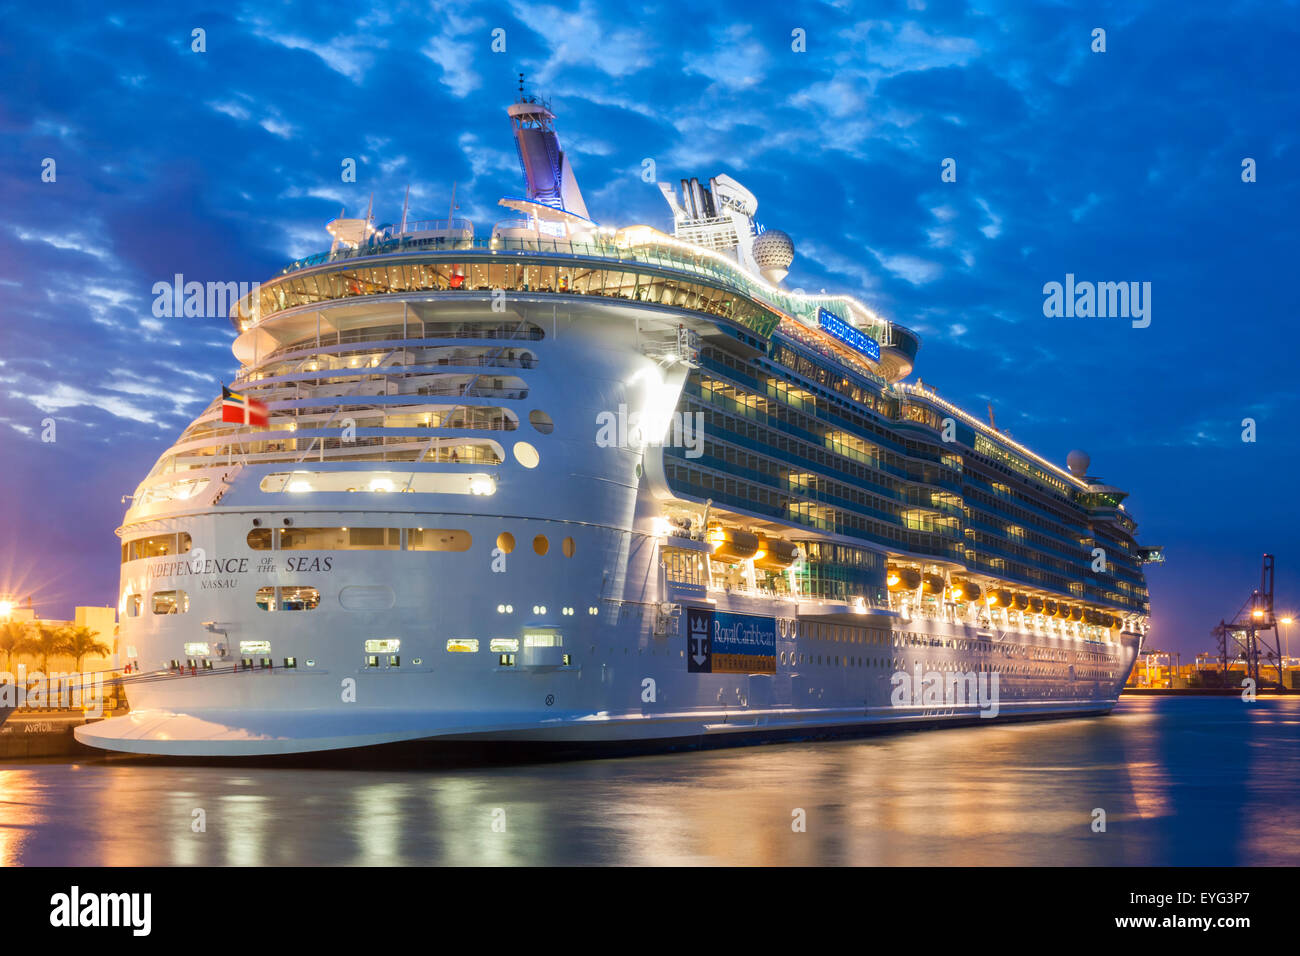 Cruise ship independence of the seas in las palmas port gran stock photo 85791391 alamy - Port of las palmas gran canaria ...